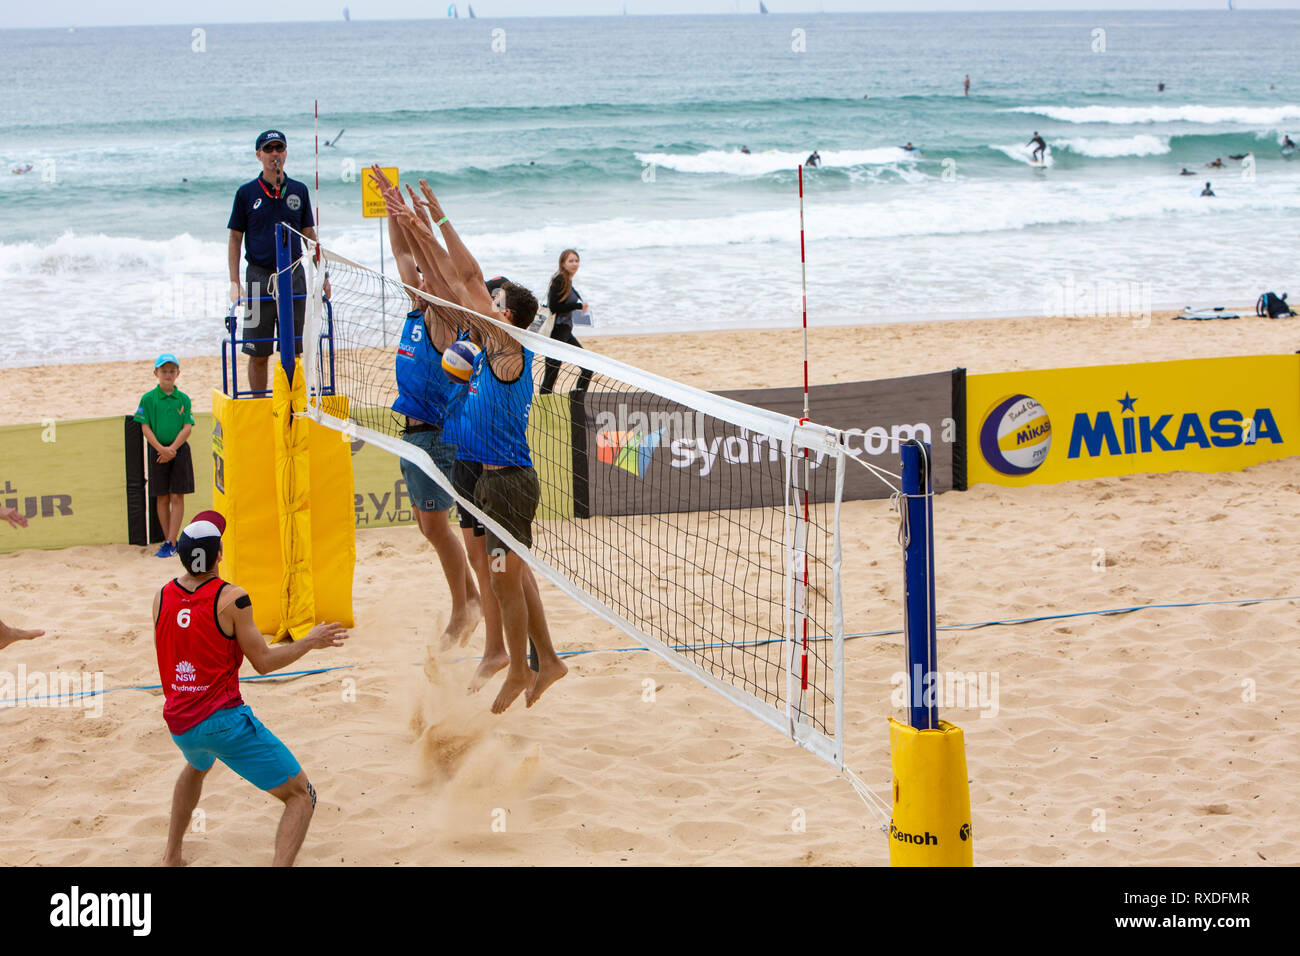 Sydney Australia 9th Mar 2019 Quarter Finals Day At Volleyfest 2019 A Fivb Beach Volleyball World Tour Tournament Being Held For The 5th Time At Manly Beach In Sydney Australia Saturday March 9th